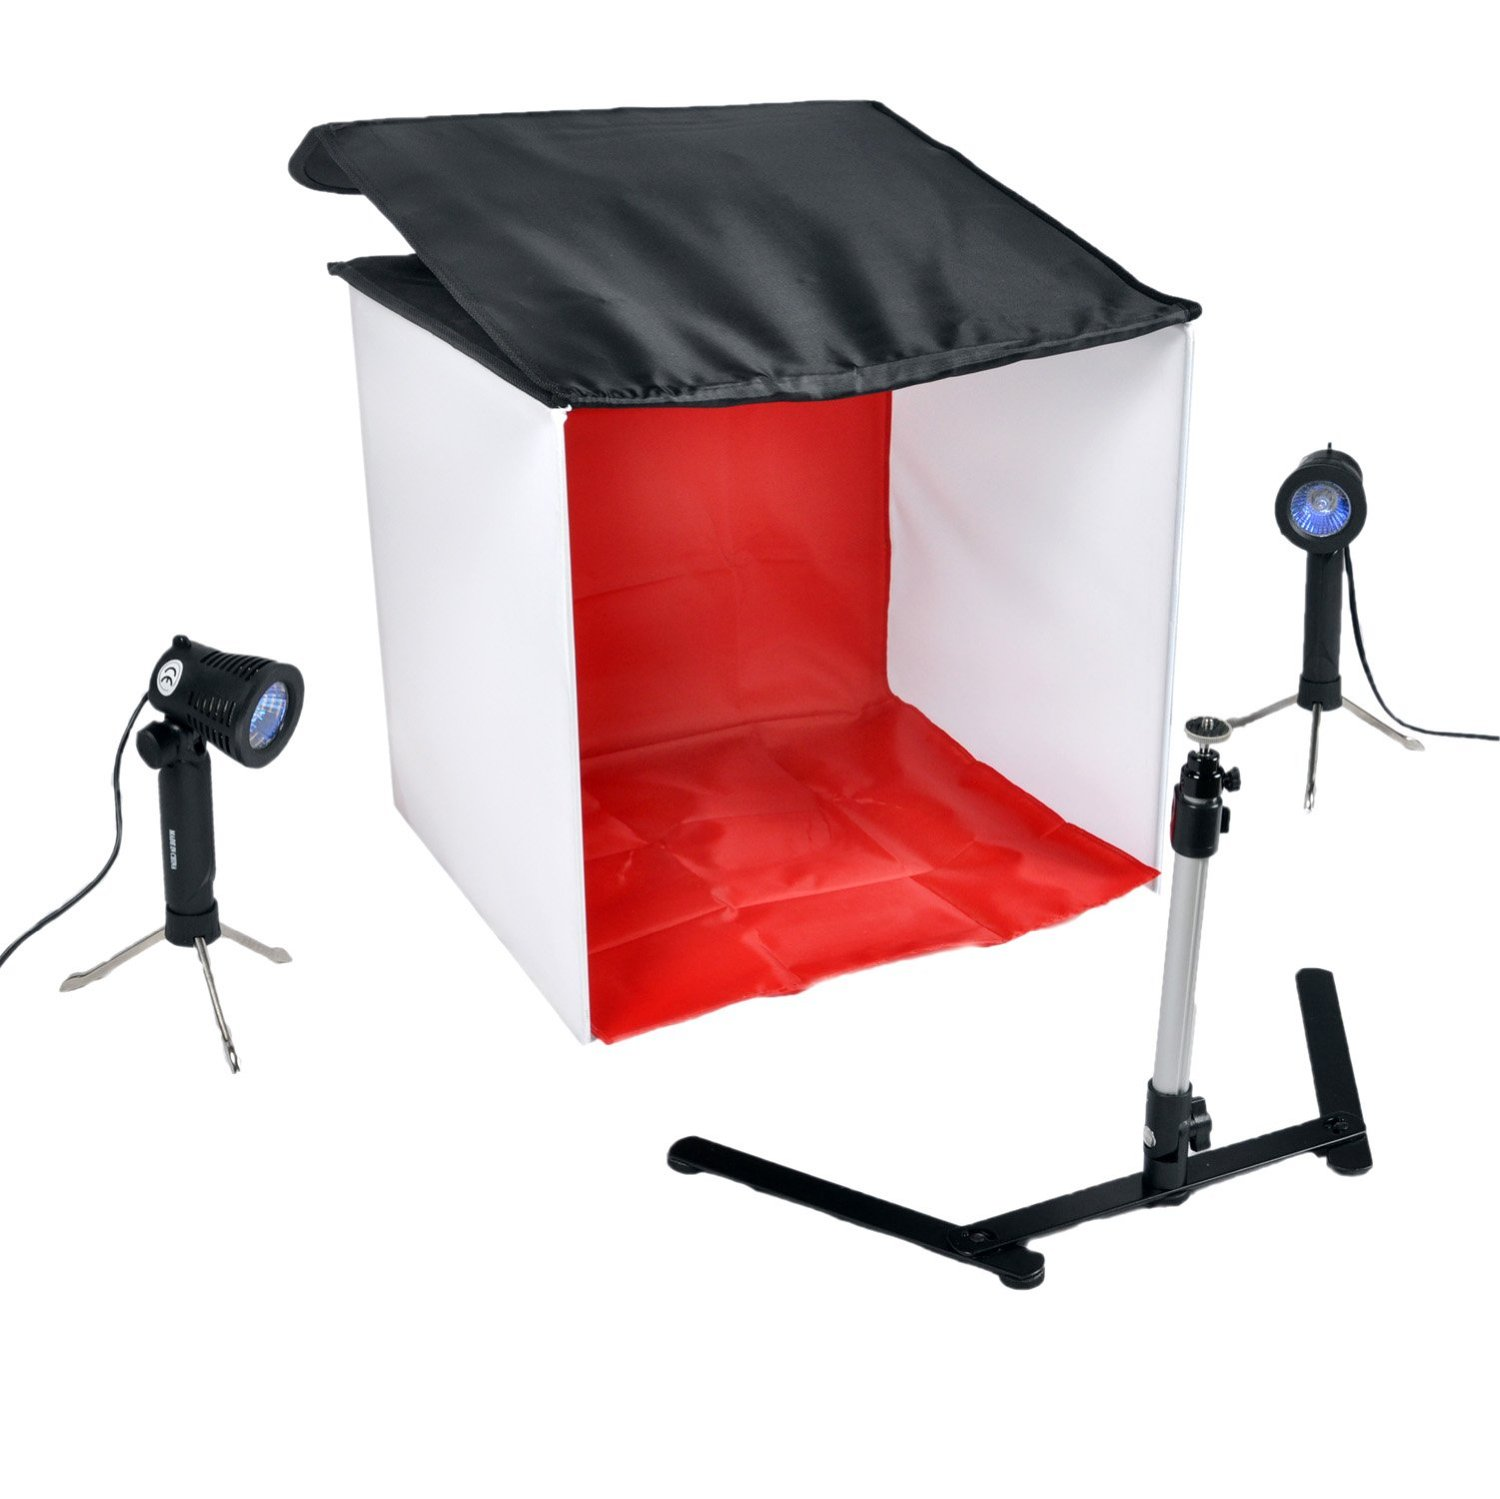 photobooth tent studio